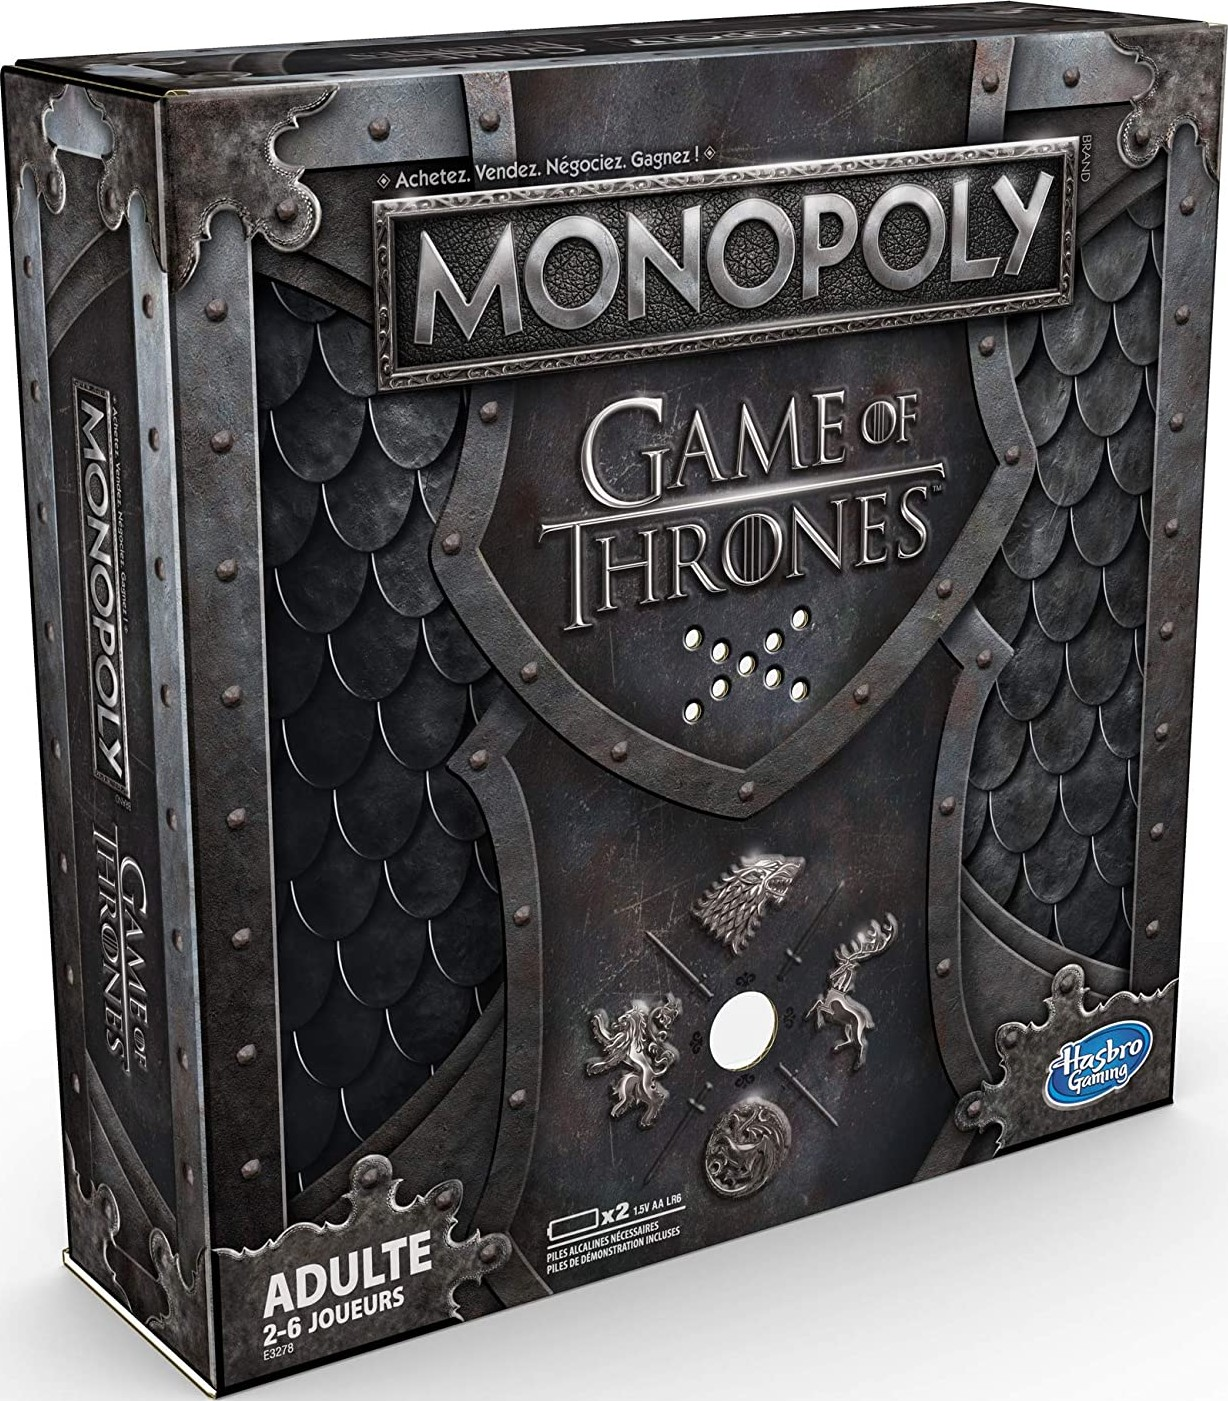 Boite du Monopoly Game of Thrones - version 2